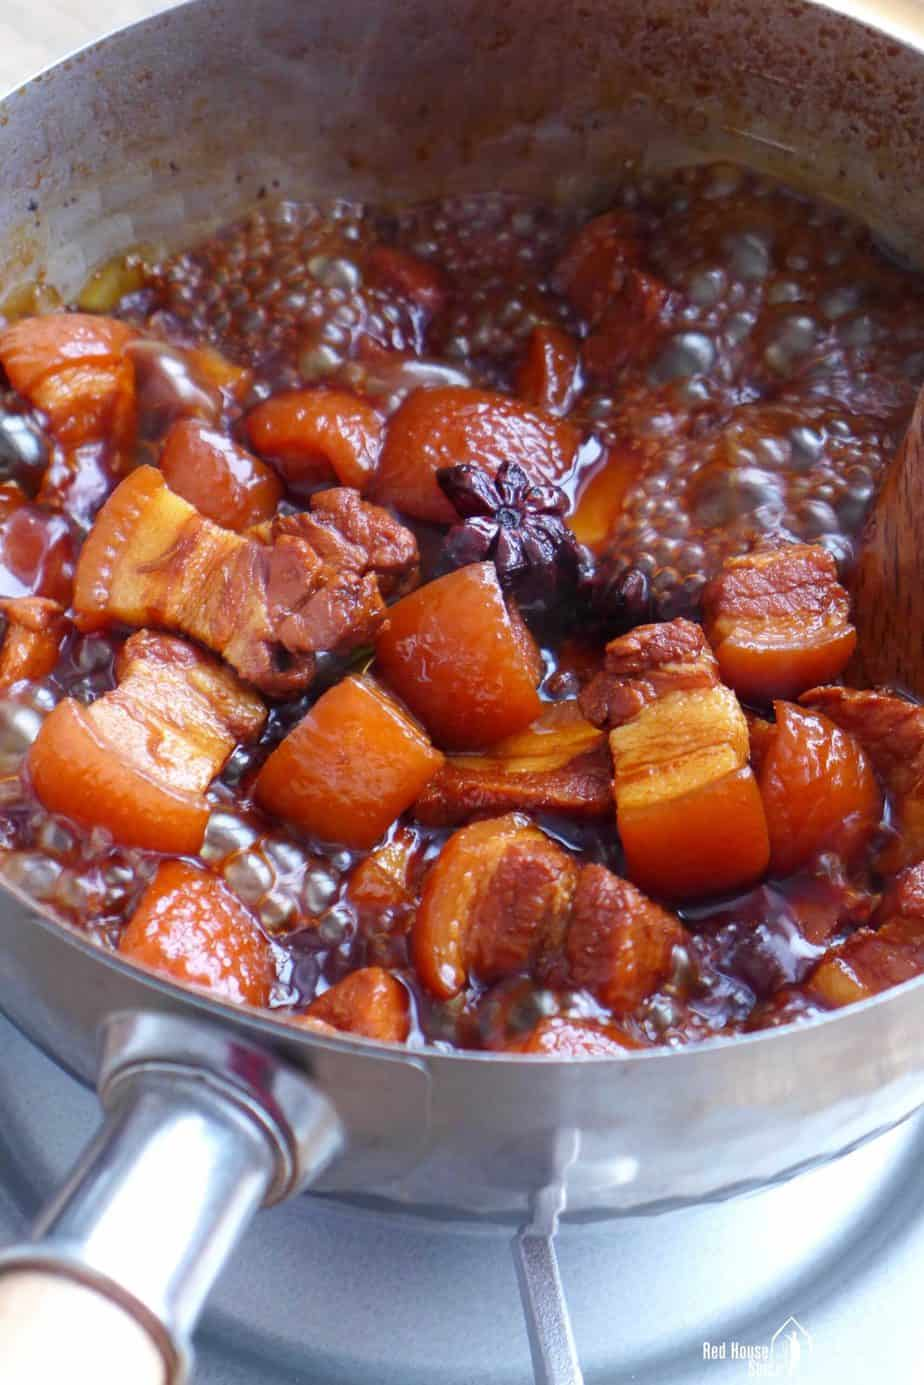 Boiling pork belly in a thick sauce